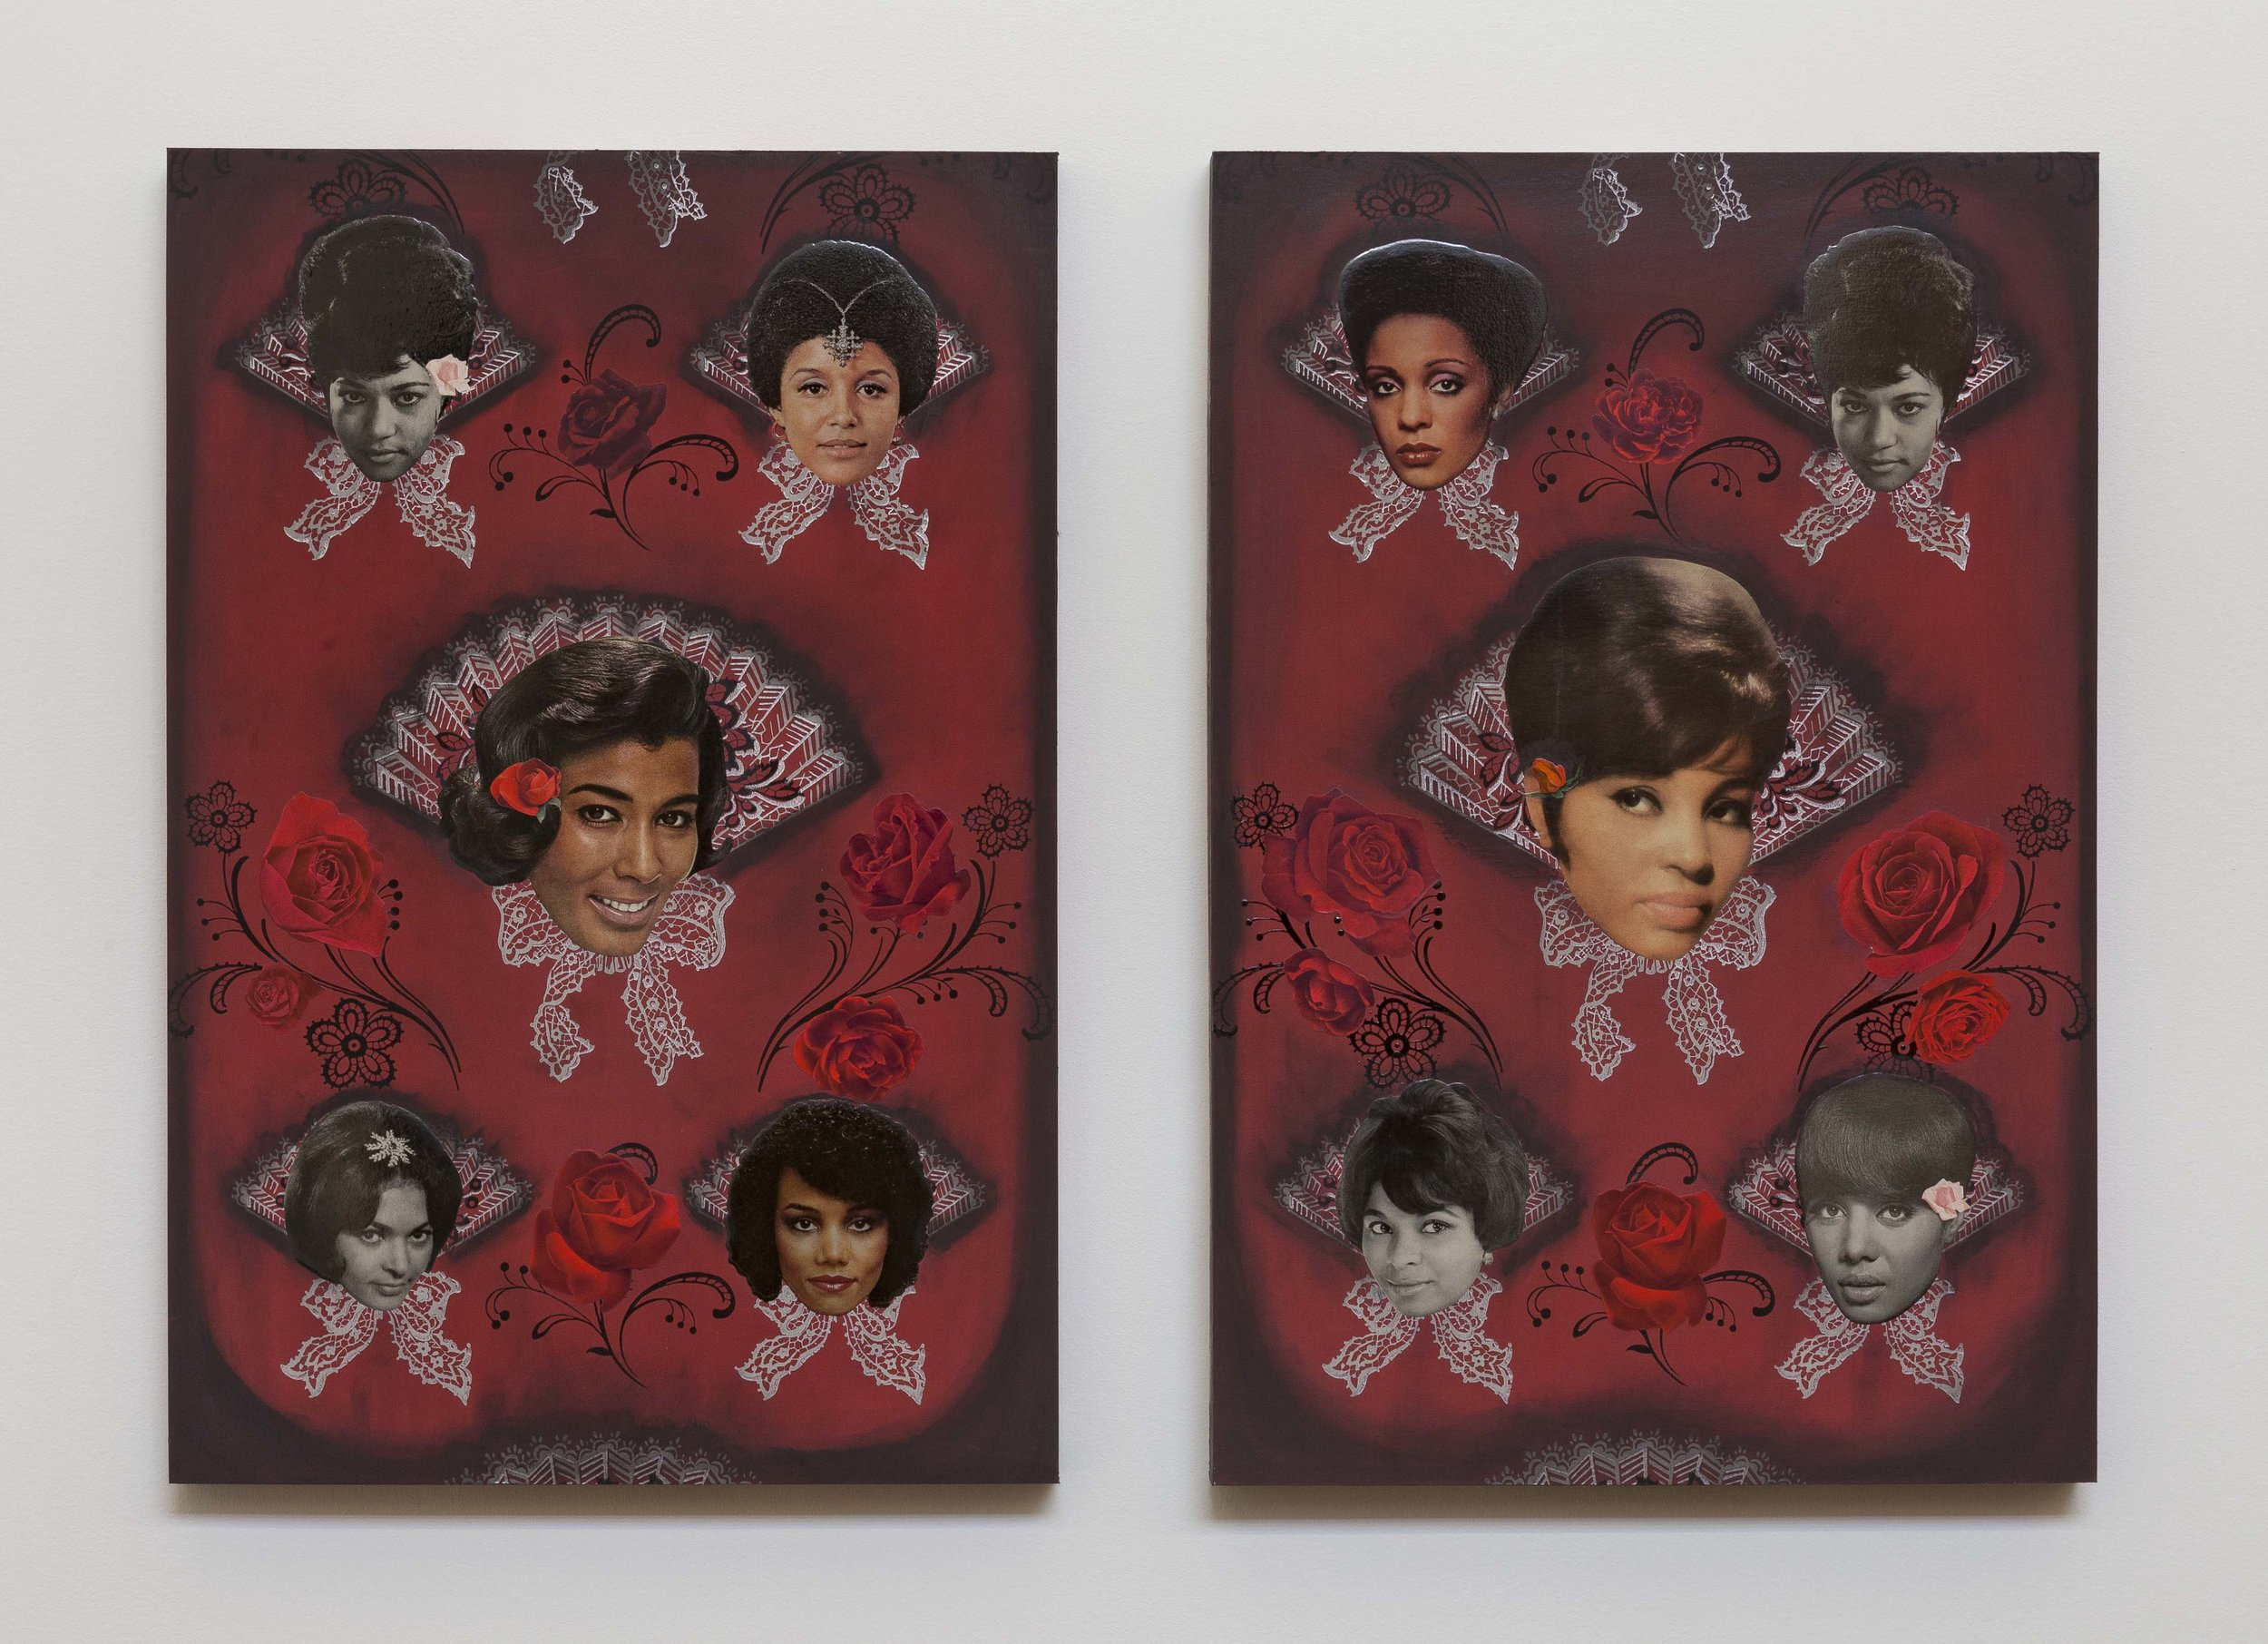 Genevieve Gaignard,  A Shout Out To My Fan Girls,  2019. Vintage wallpaper, vintage magazine cutouts, charcoal, clear acrylic, on panel, 30 x 40 x 2 in. (76.2 x 101.6 x 5.1 cm)[30 x 20 x 2 in. each panel.] Photo by RCH Photography. Courtesy the artist and Monique Meloche Gallery. Chicago.